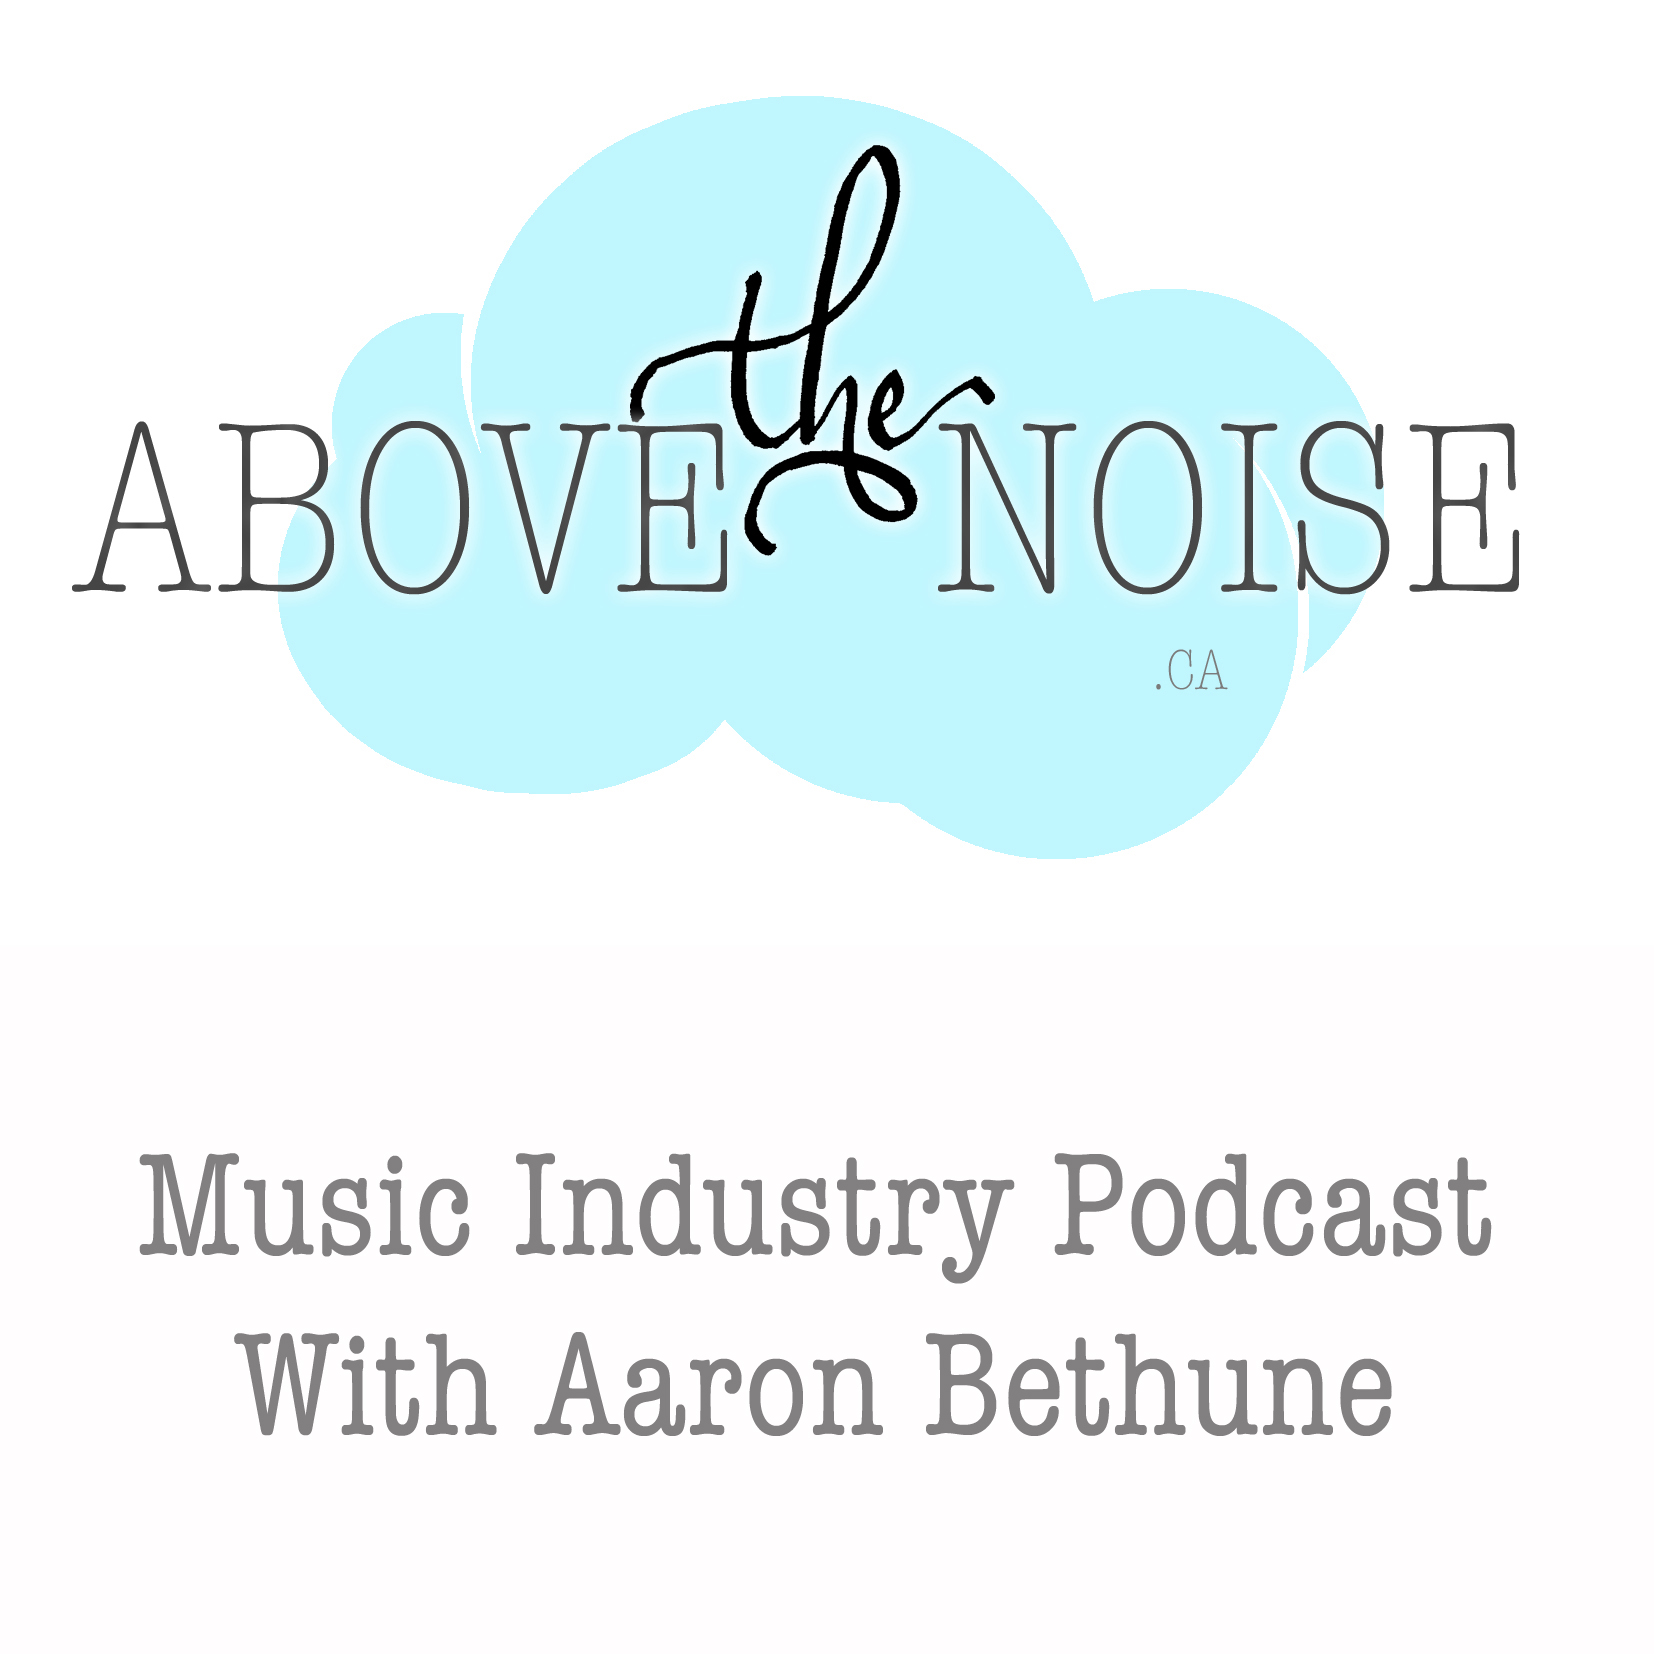 Above The Noise Music Industry Podcast with Aaron Bethune